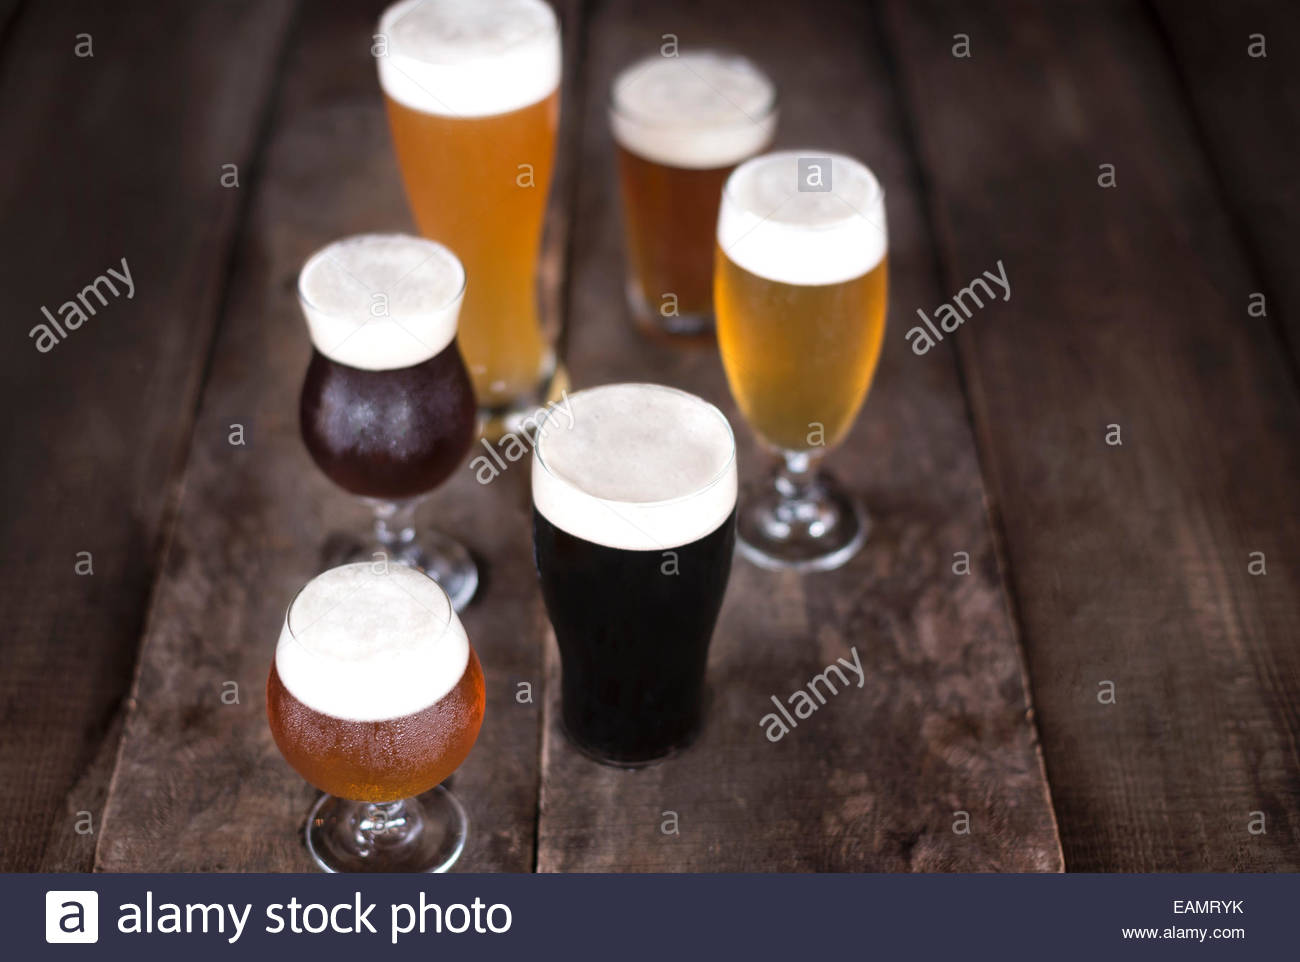 Variety of beers in a variety of glassware on a rustic wood surface. - Stock Image